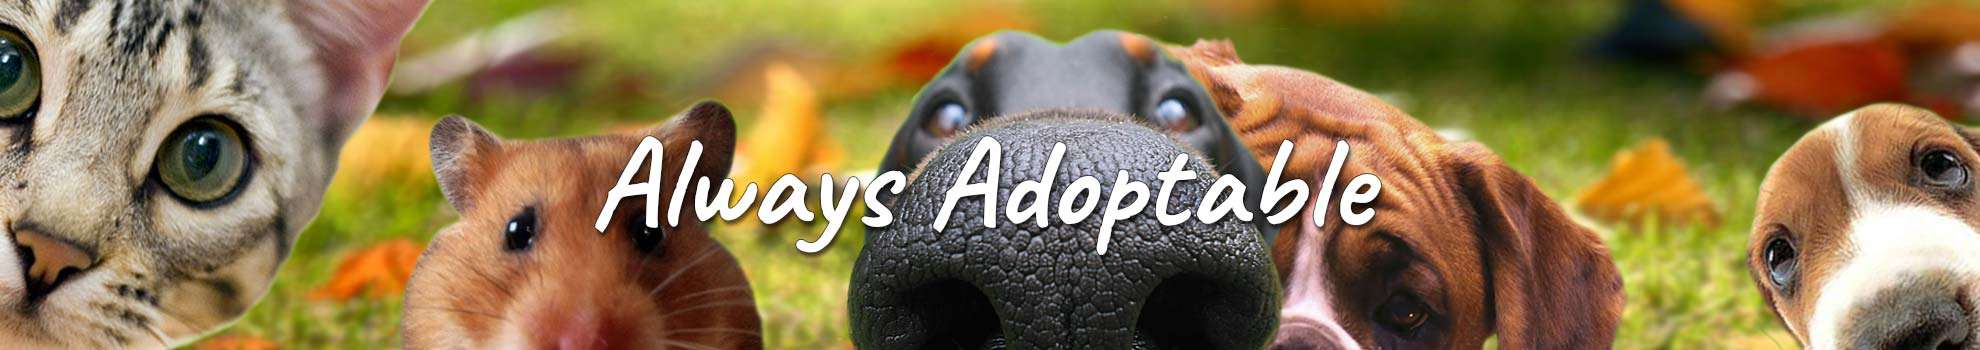 Always adoptable - rehoming unwanted pets